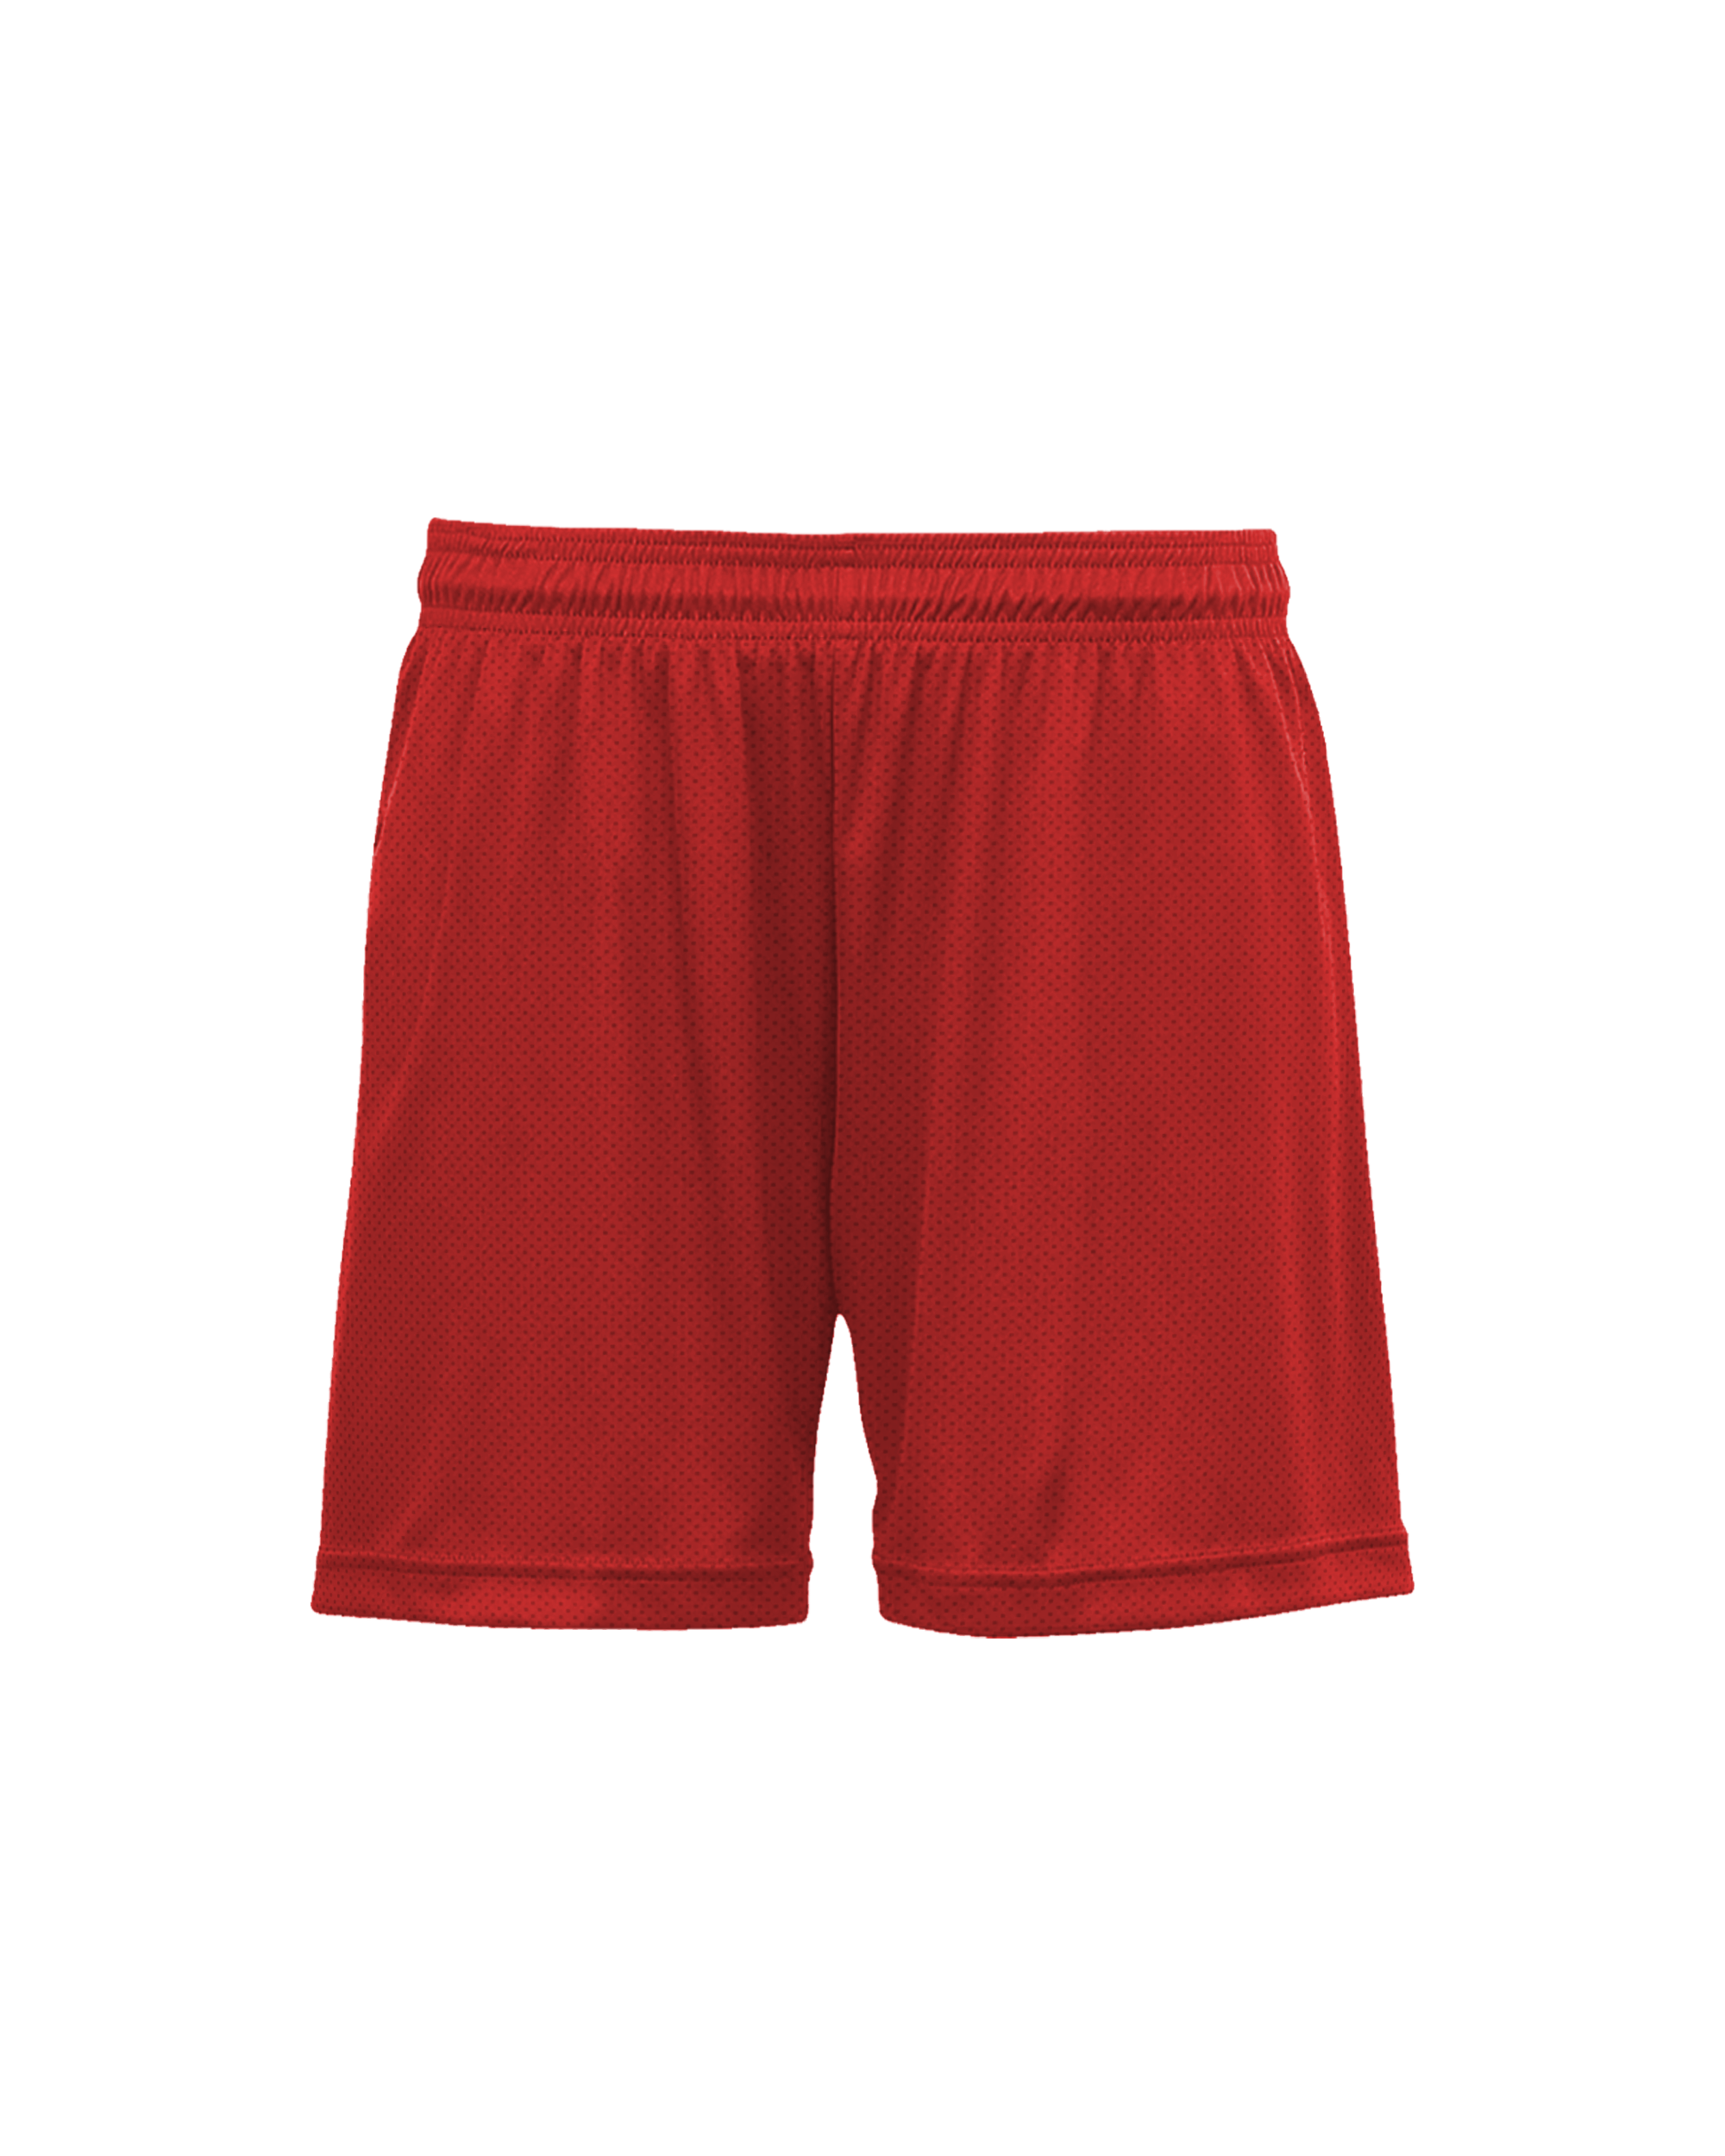 Mesh Women's Short - Red